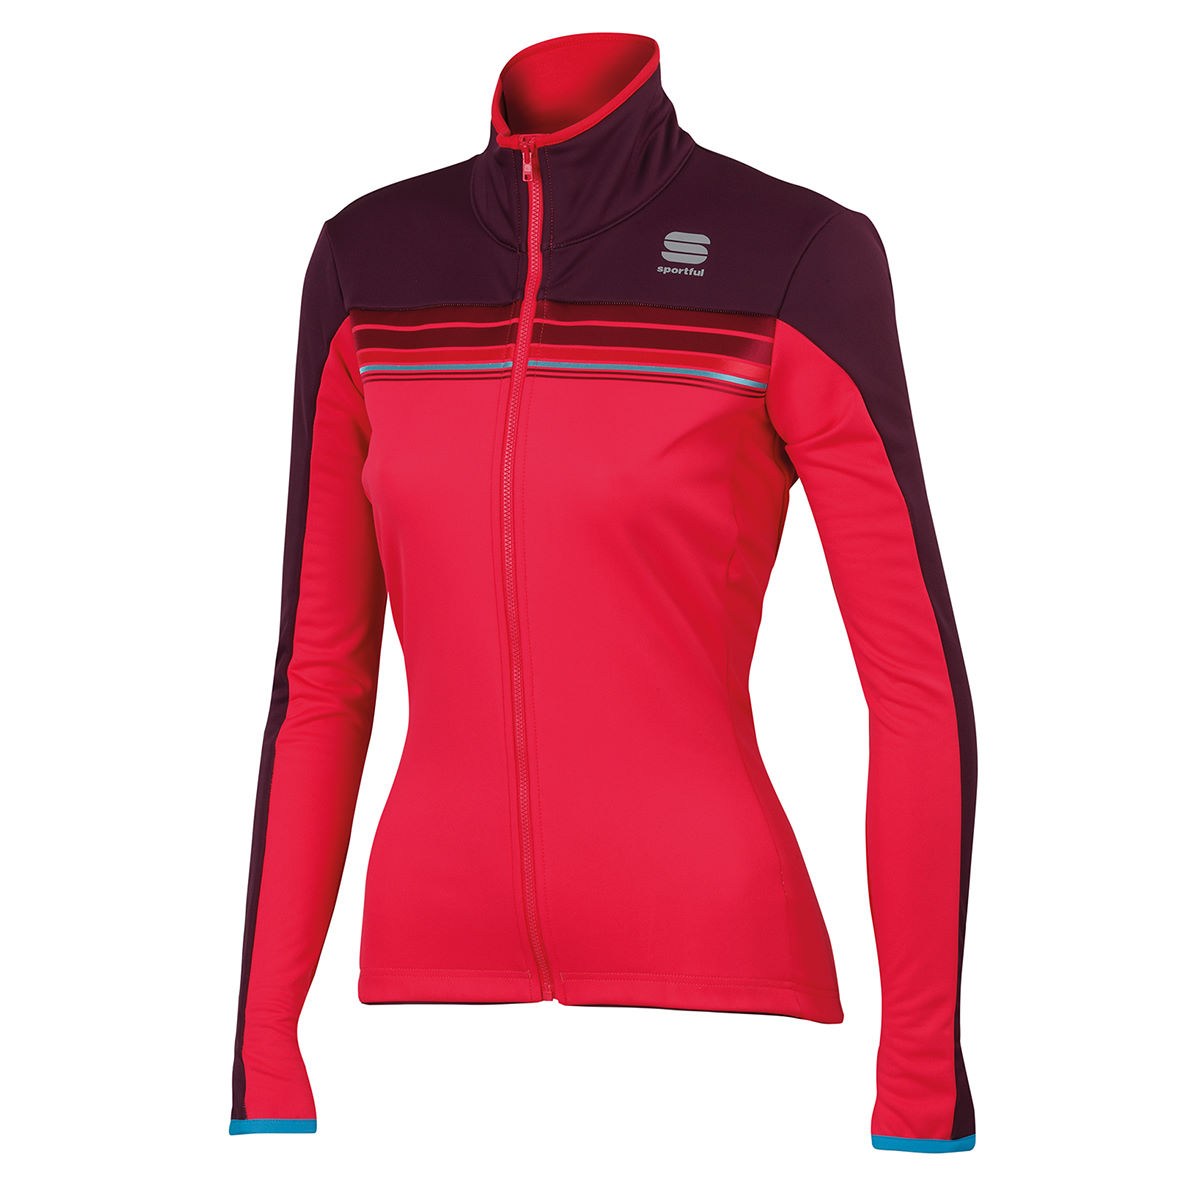 Veste Femme Sportful Allure Softshell - XS Cherry/Bordeaux Vestes